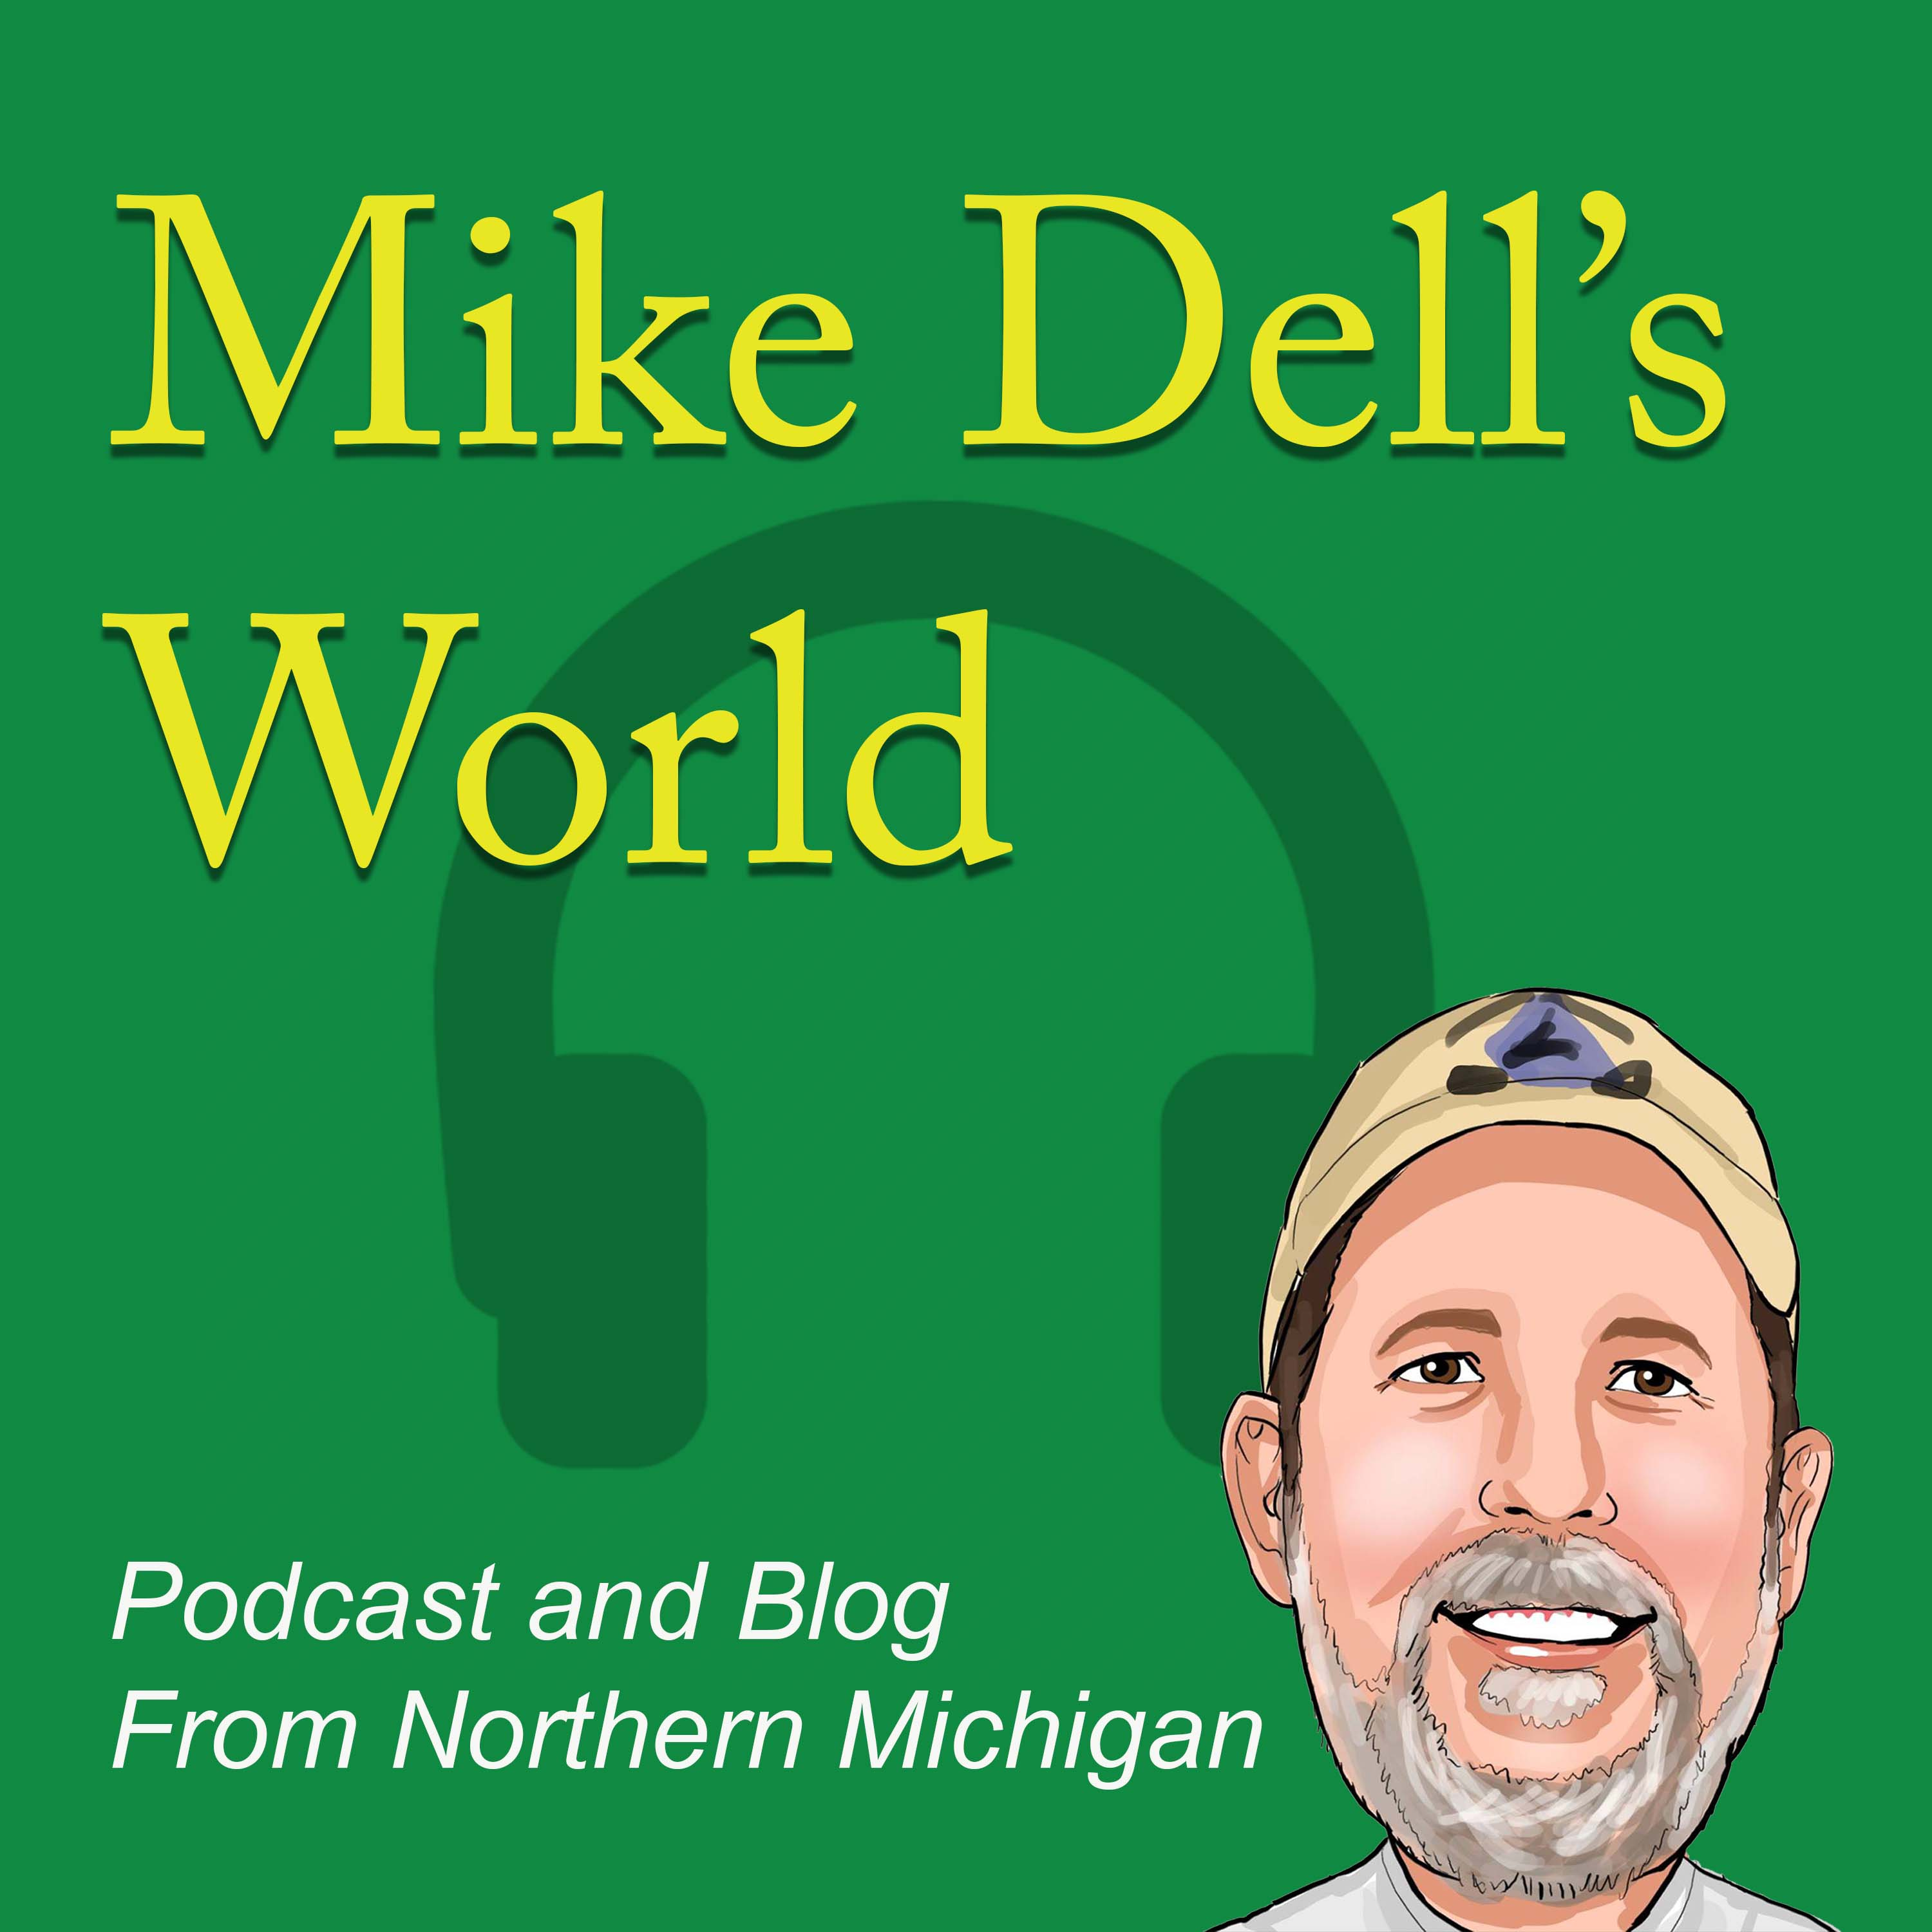 Mike Dell's World 🌳